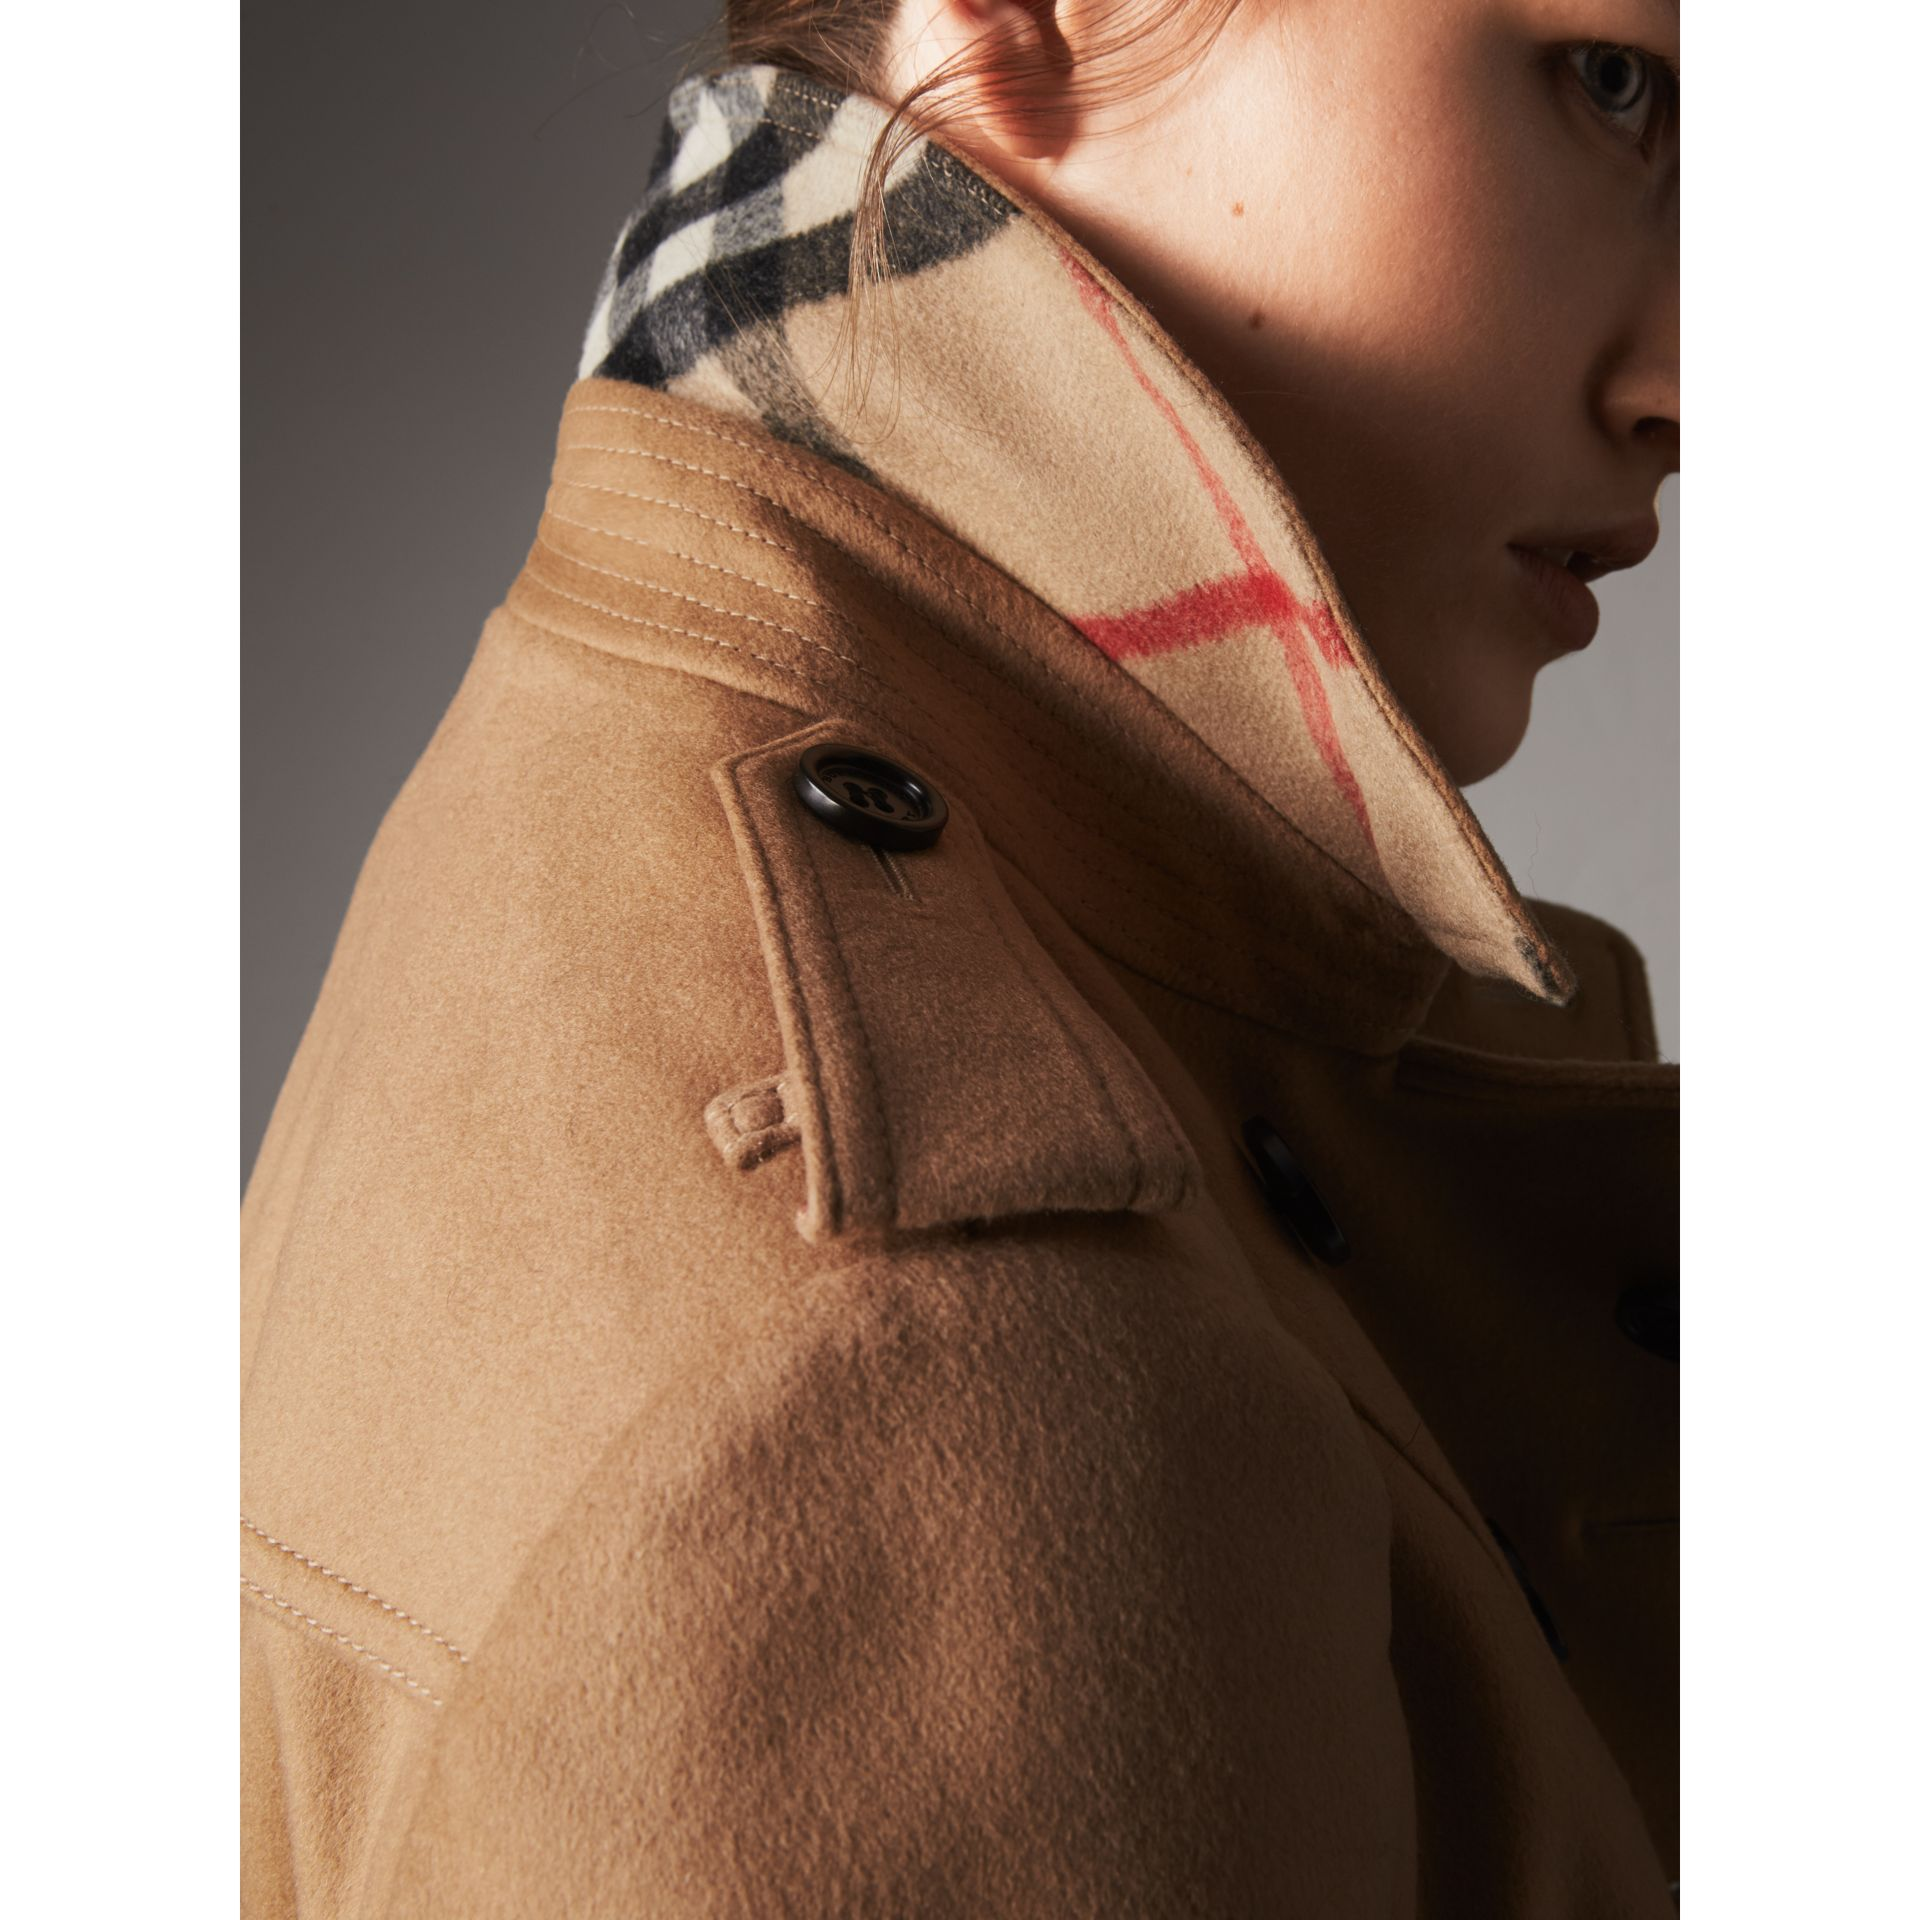 Wool Cashmere Trench Coat with Fur Collar in Camel - Women | Burberry Hong Kong - gallery image 5